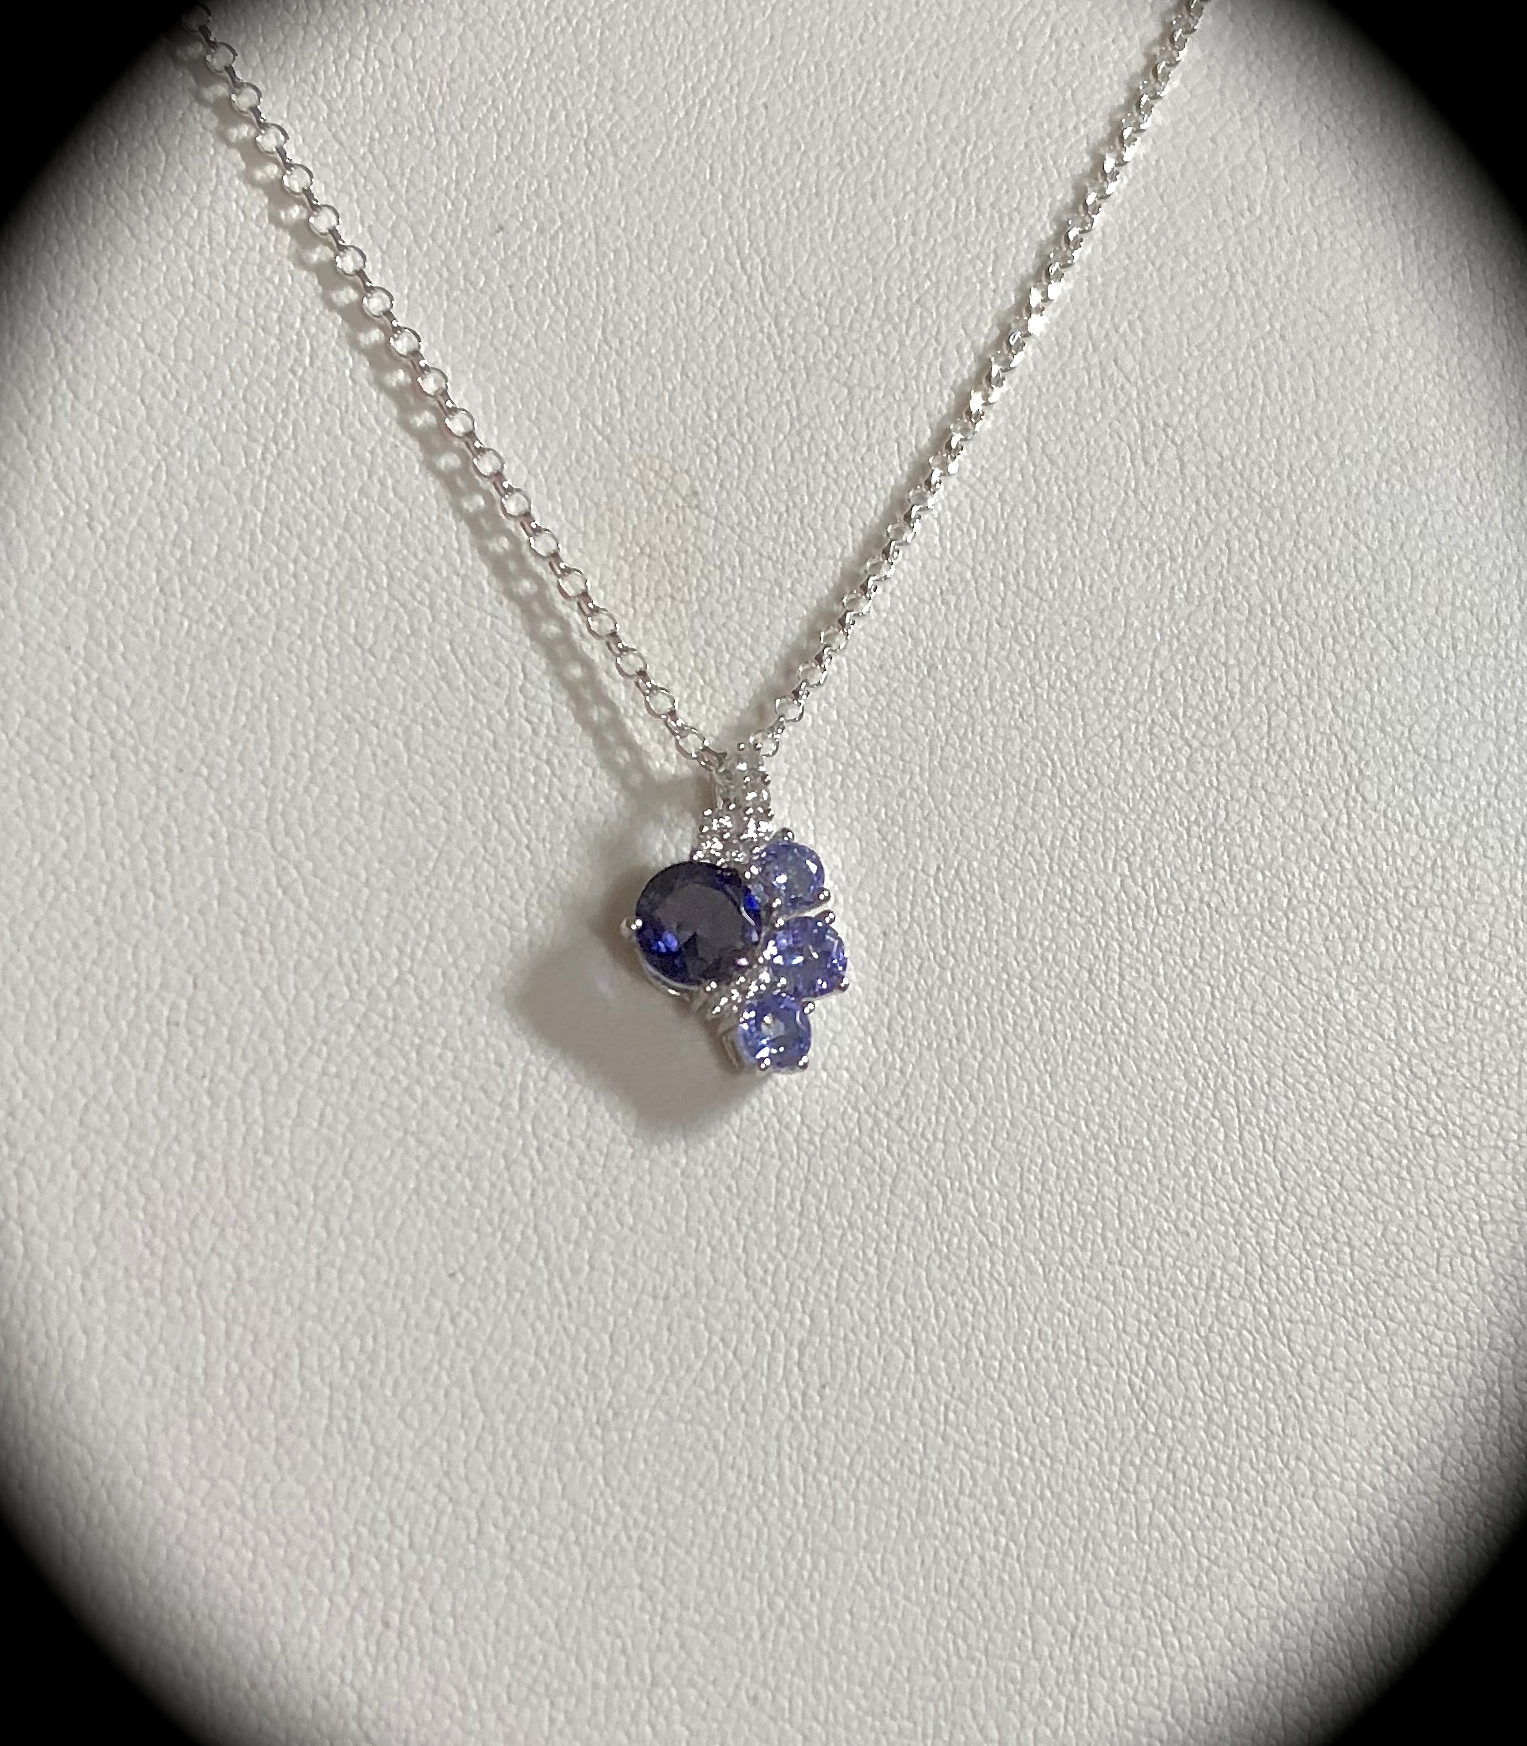 product by pendant js crystal intenebris eye of necklace iolite